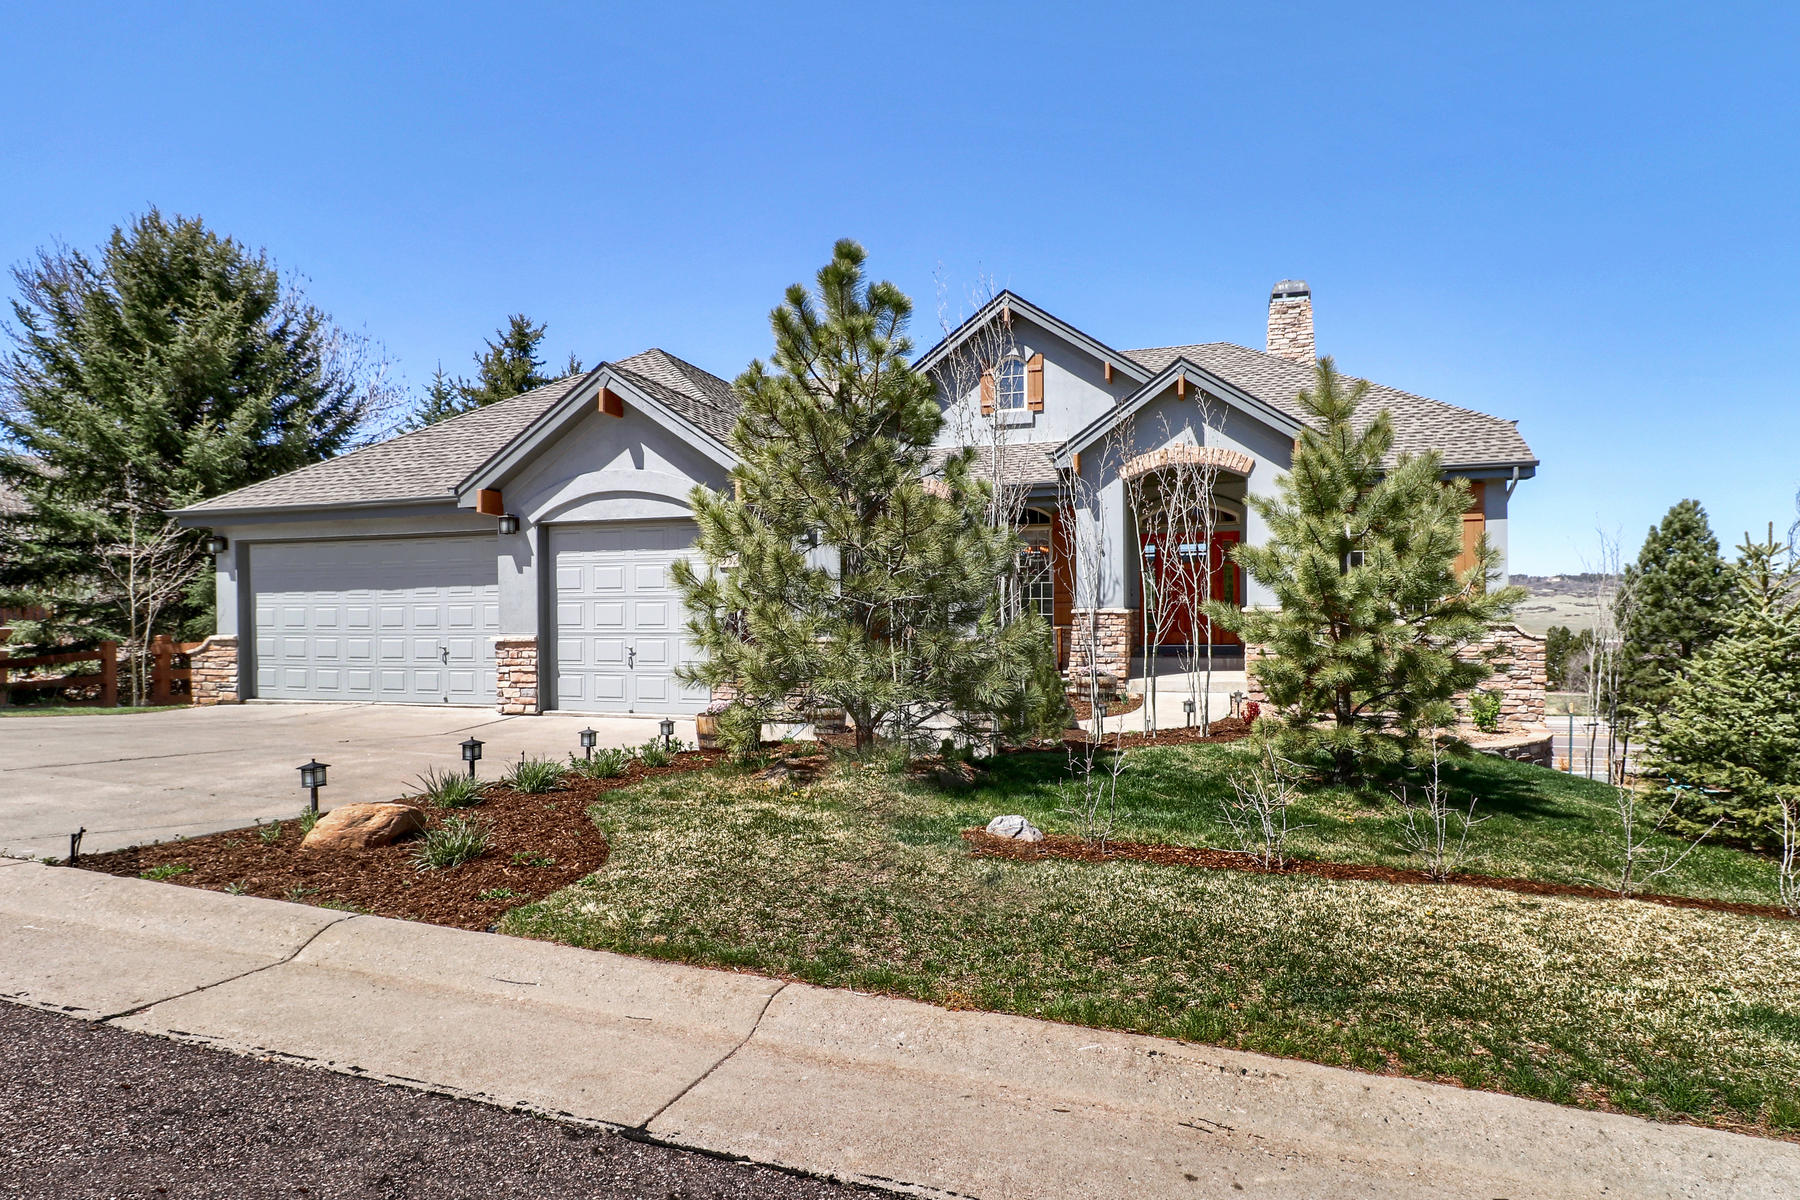 Single Family Home for Active at New homes wish they were this fabulous! 3325 Red Tree Pl Castle Rock, Colorado 80104 United States